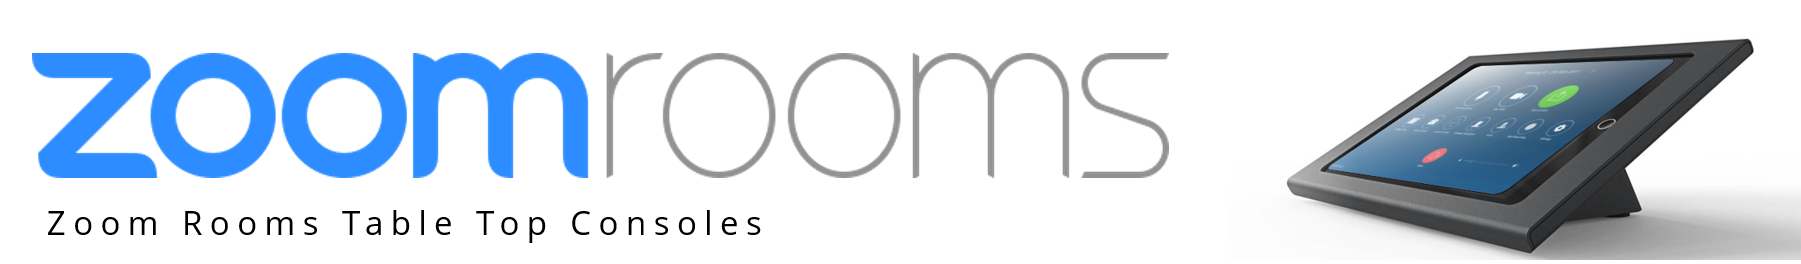 Zoom Rooms Consoles from VCGear.com